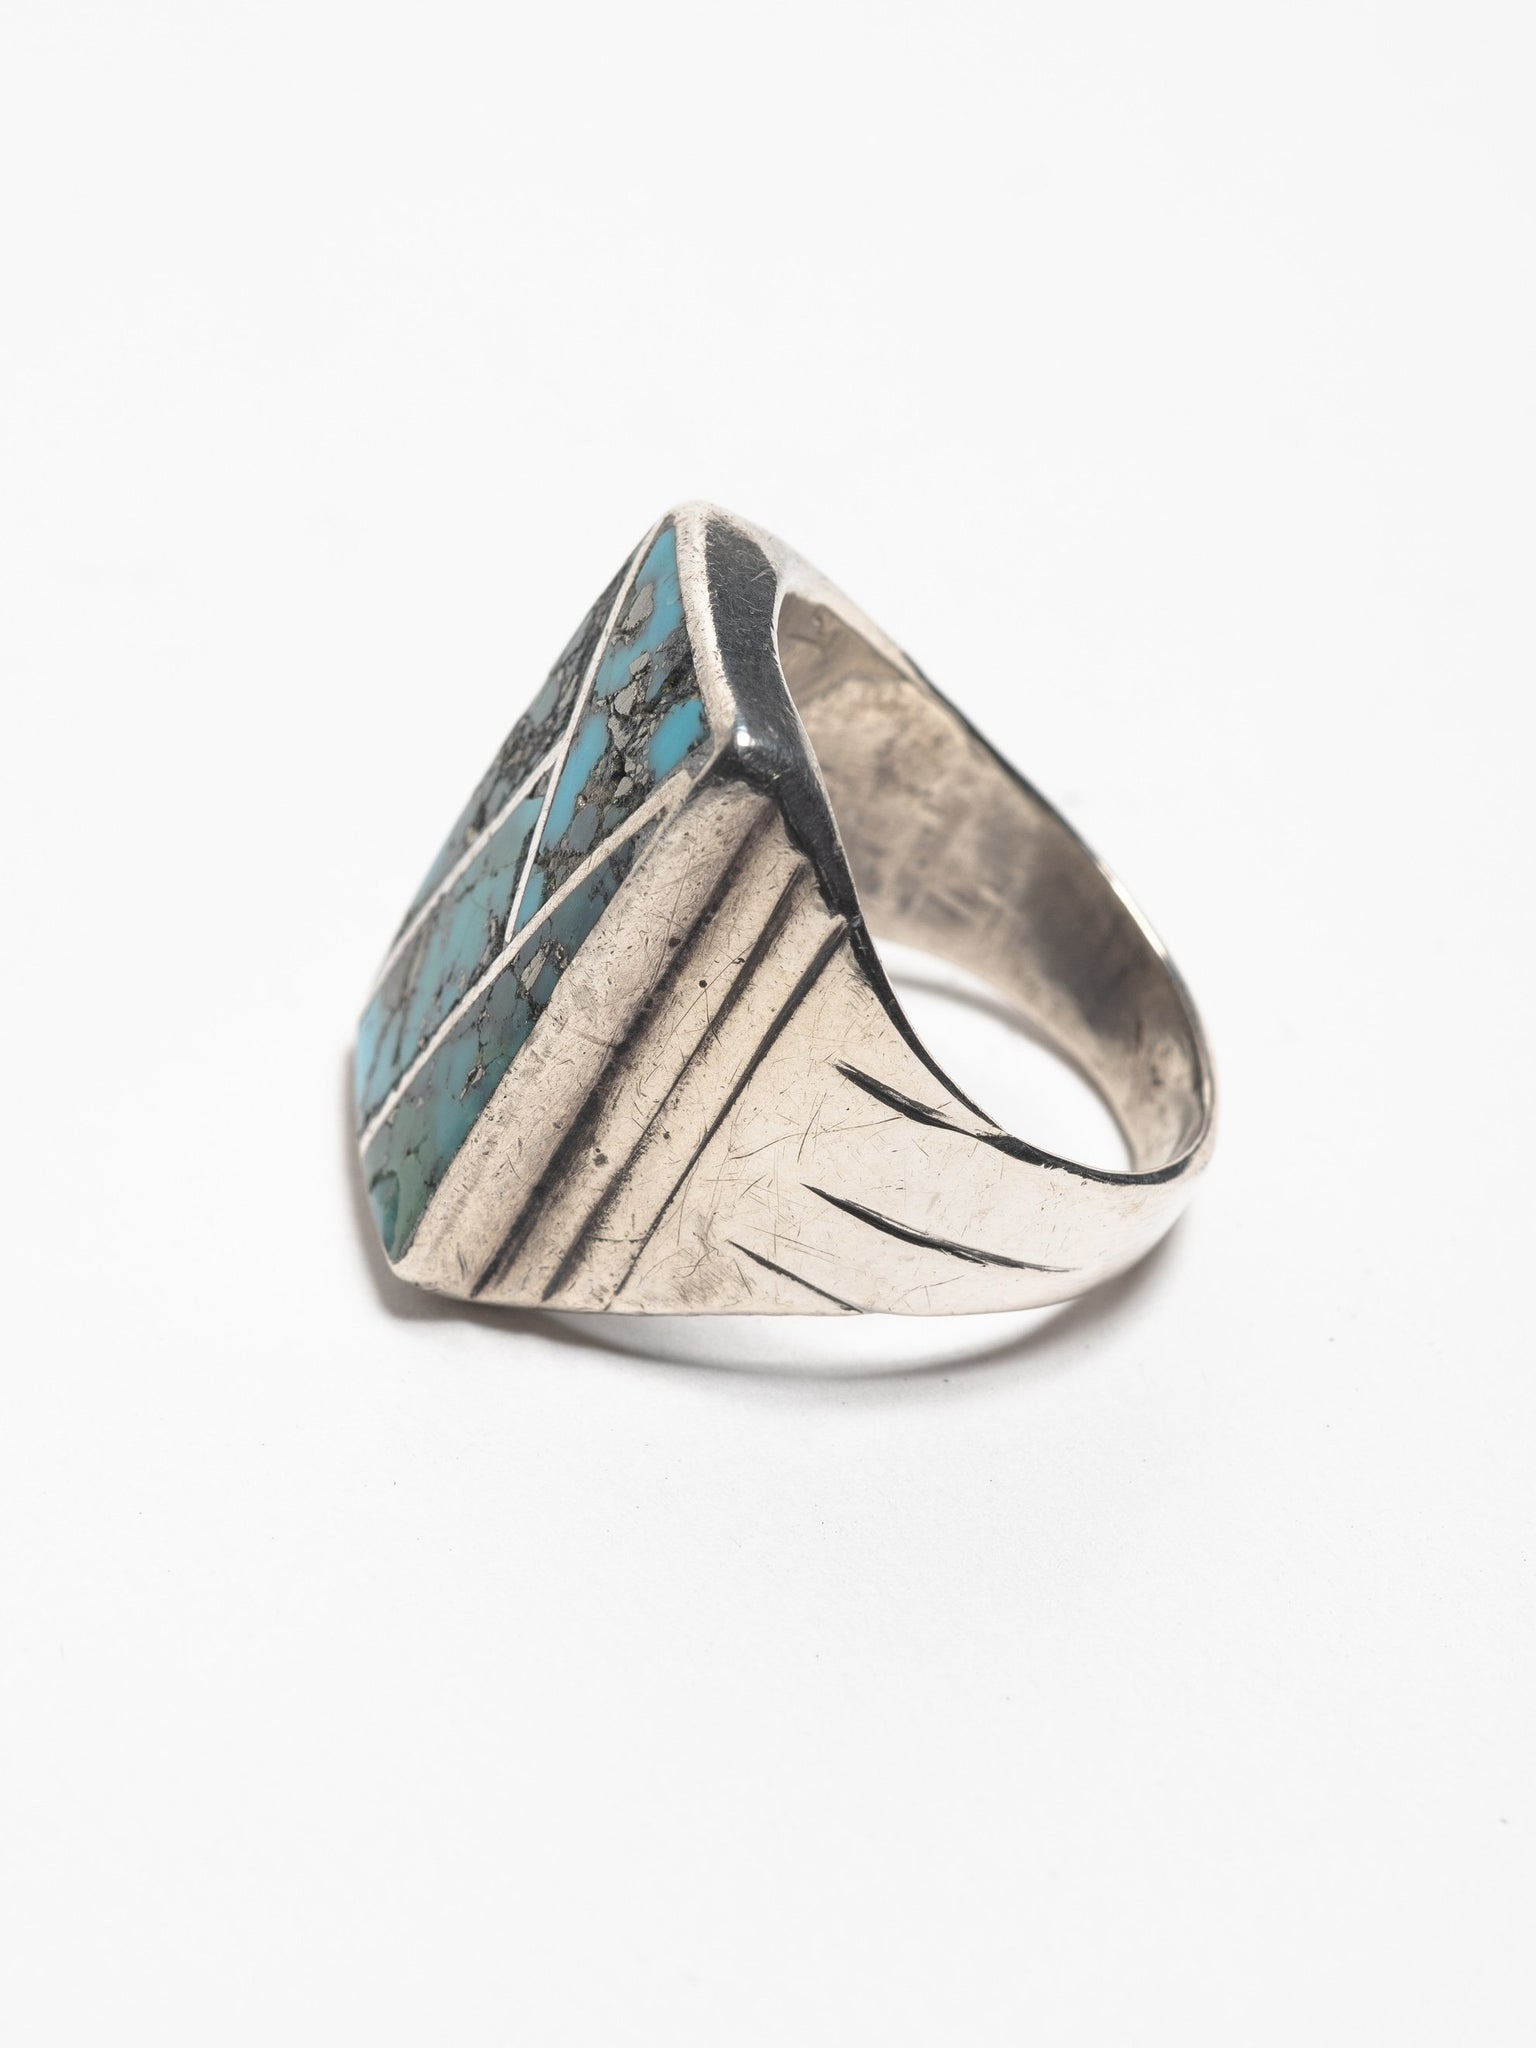 vintage-1940-s-navajo-sterling-silver-chanel-ring-with-inlayed-turquoise